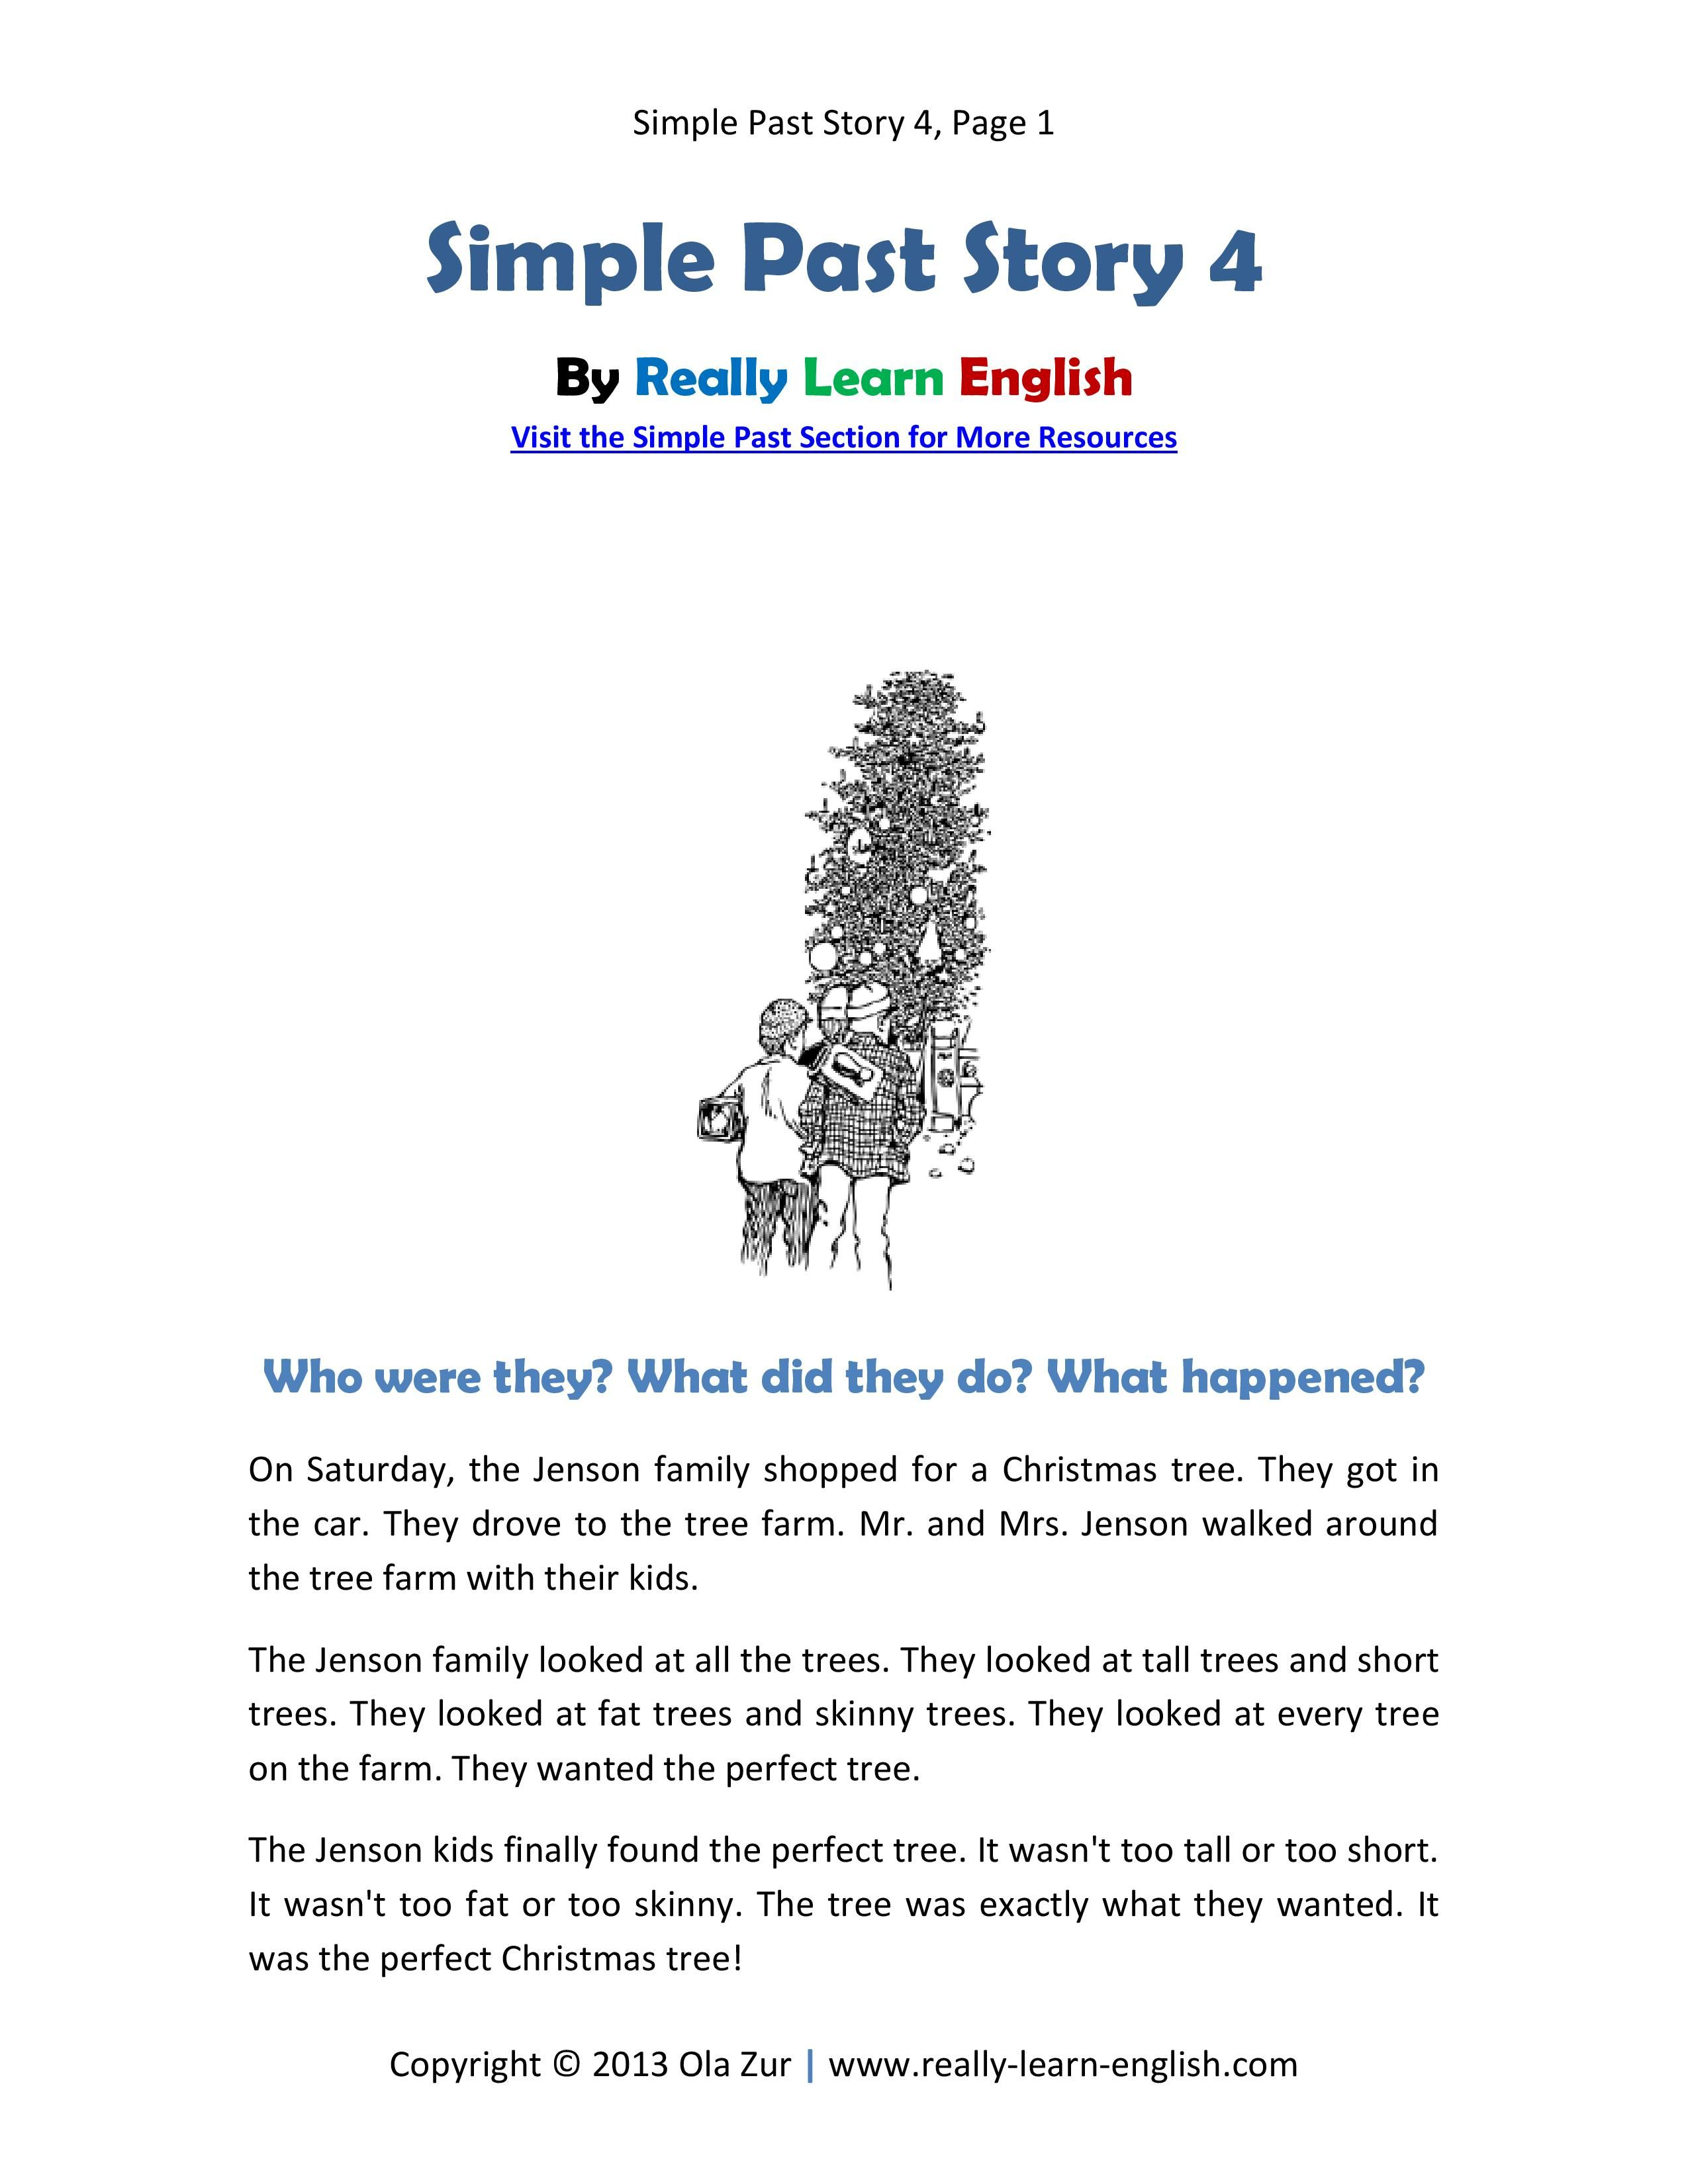 Practice The Simple Past Tense Free Printable Short